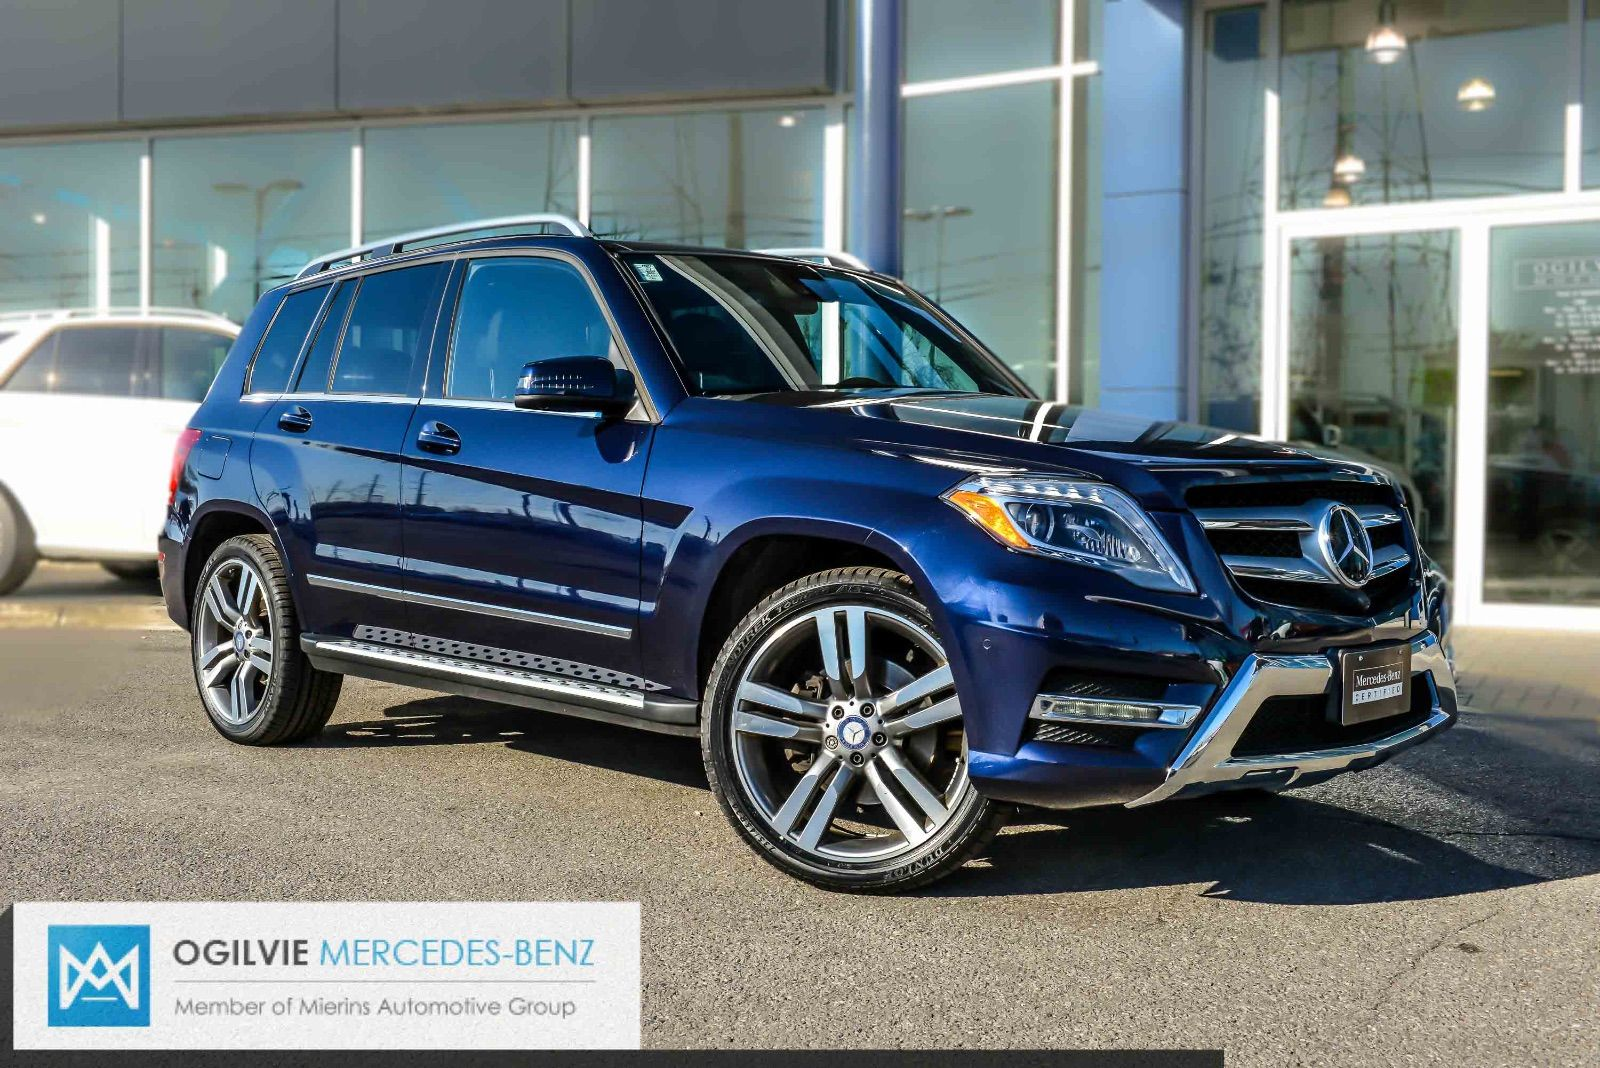 details glk vehicle suv benz photo mercedes fl riviera beach